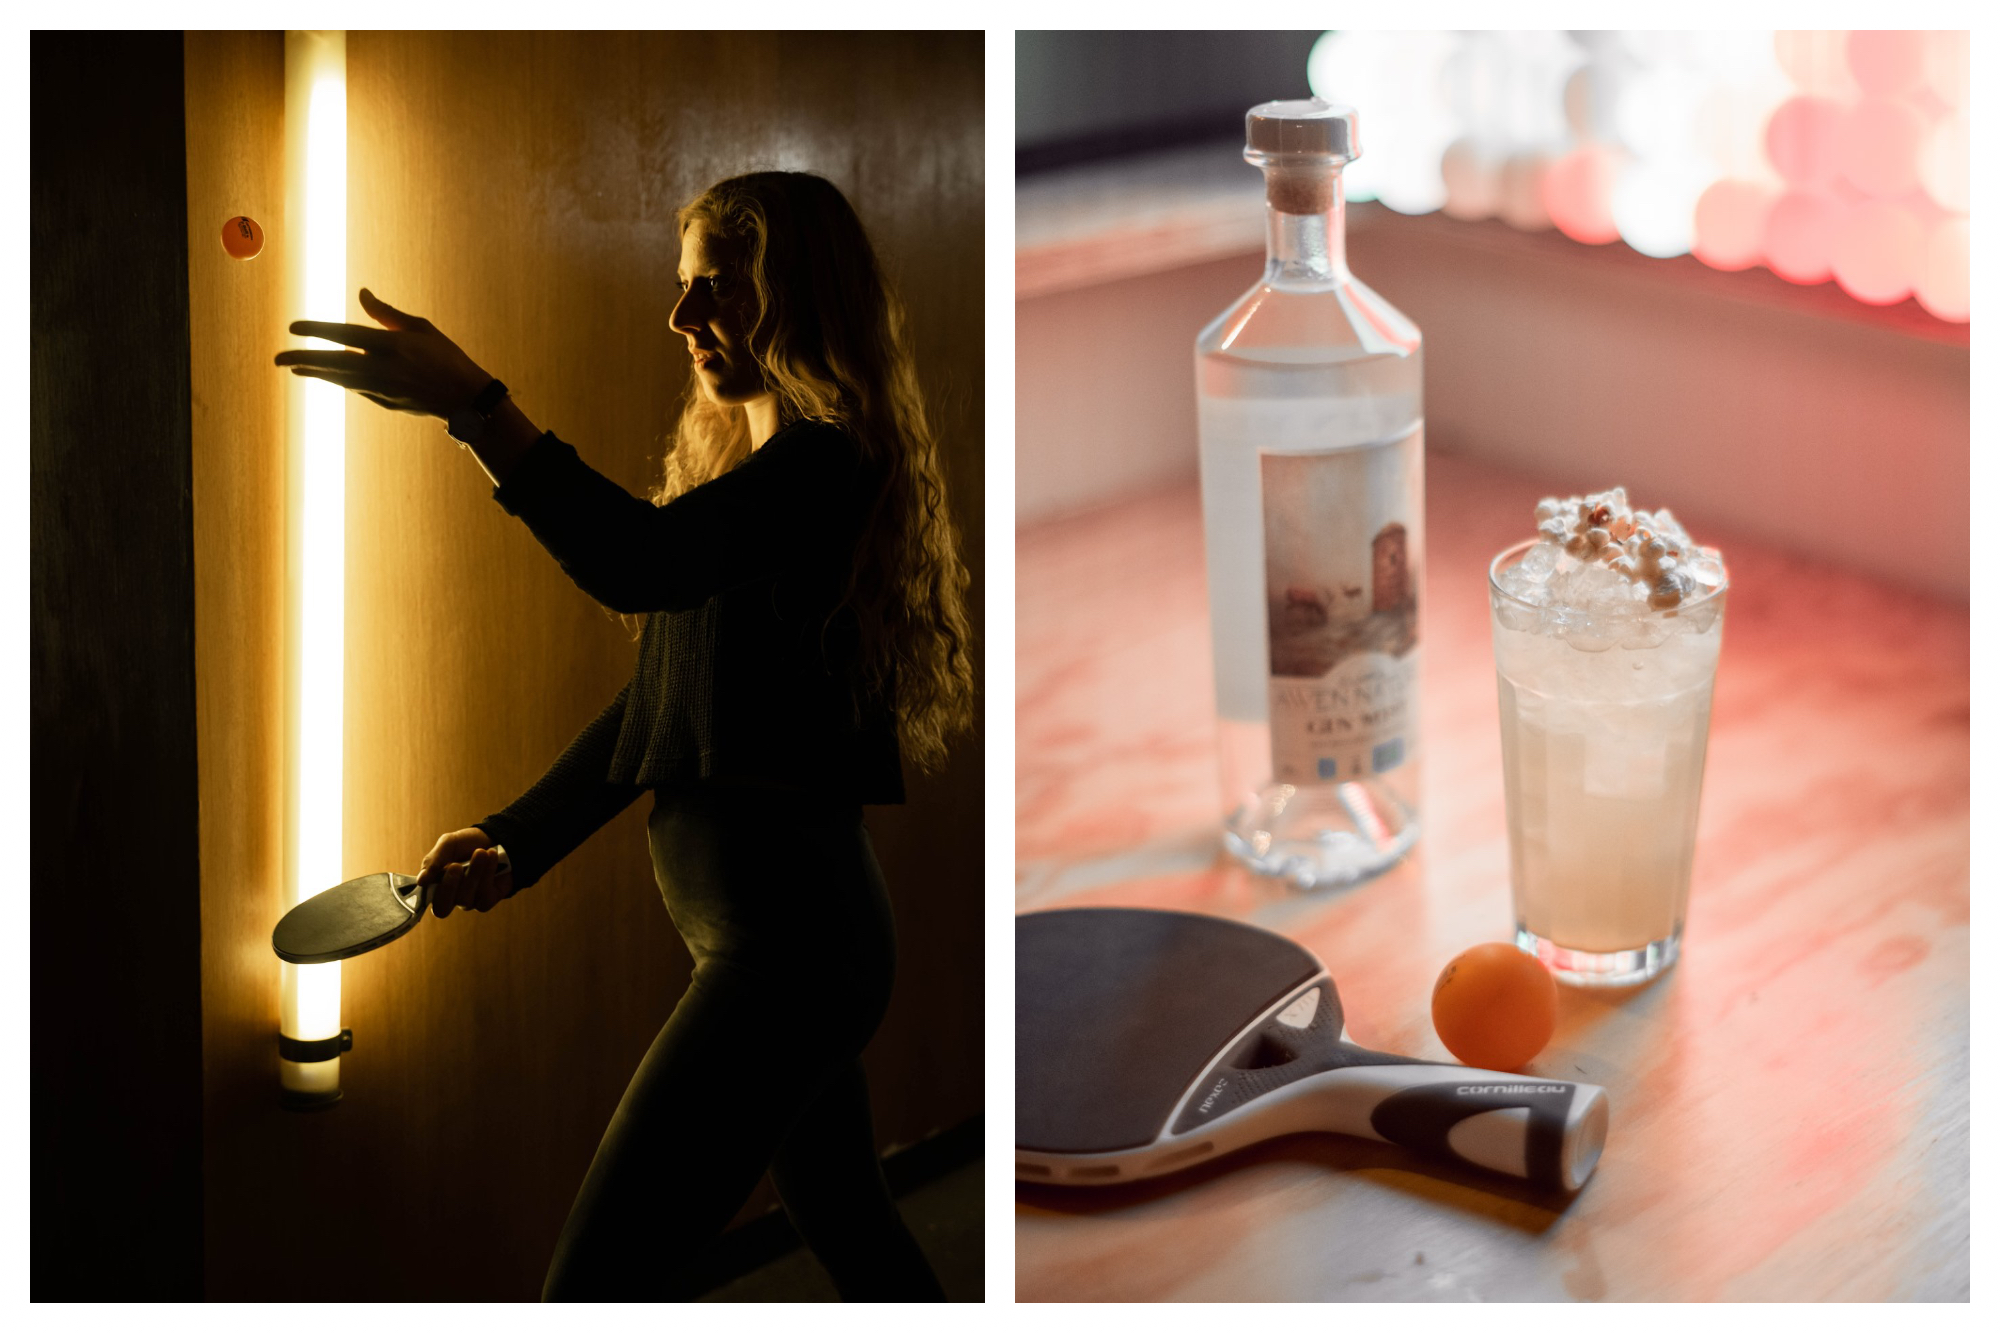 On left: A ping-pong player readies her serve in the dim light of Gossima Ping Pong Bar. On right: Gossima Ping Pong Bar, in Paris' 11th arrondissement, serves up shareable bar food and drinks that you can enjoy in between sets.